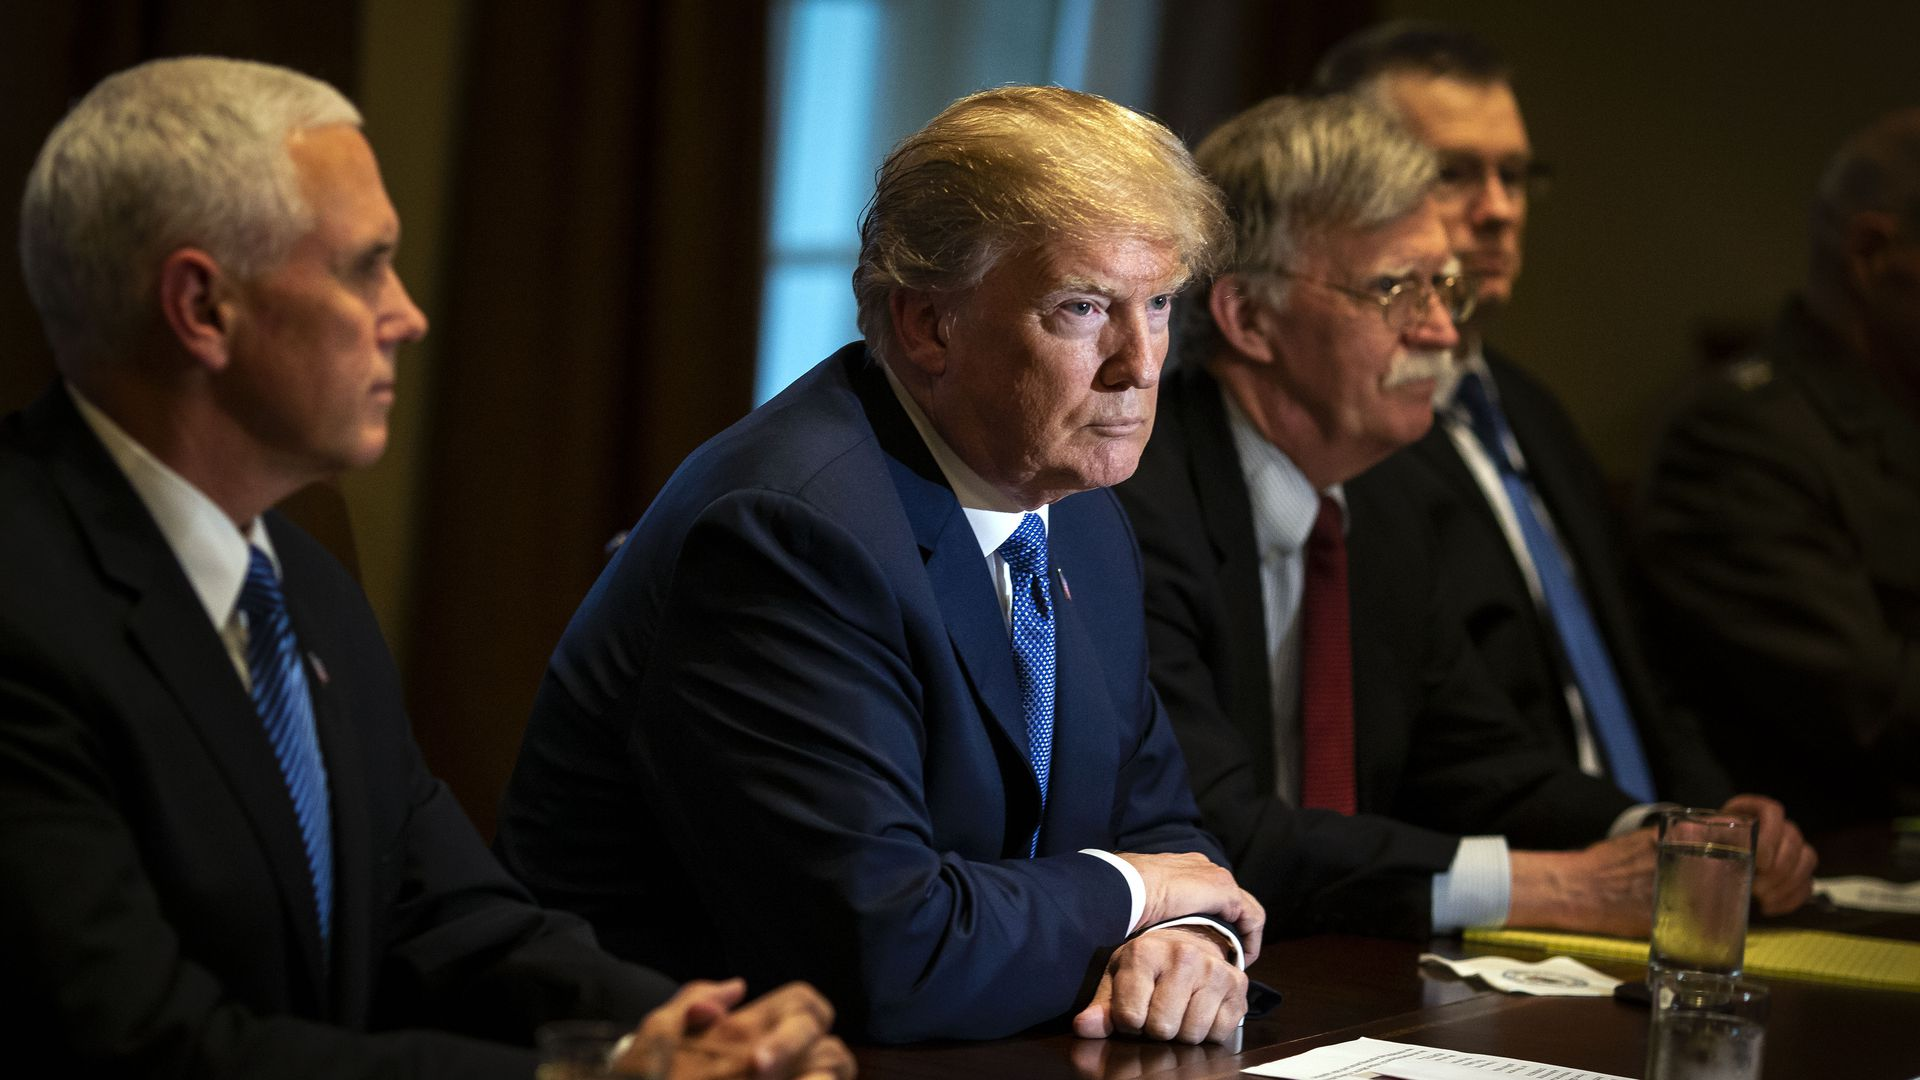 President Trump in a Cabinet meeting on April 9, 2018